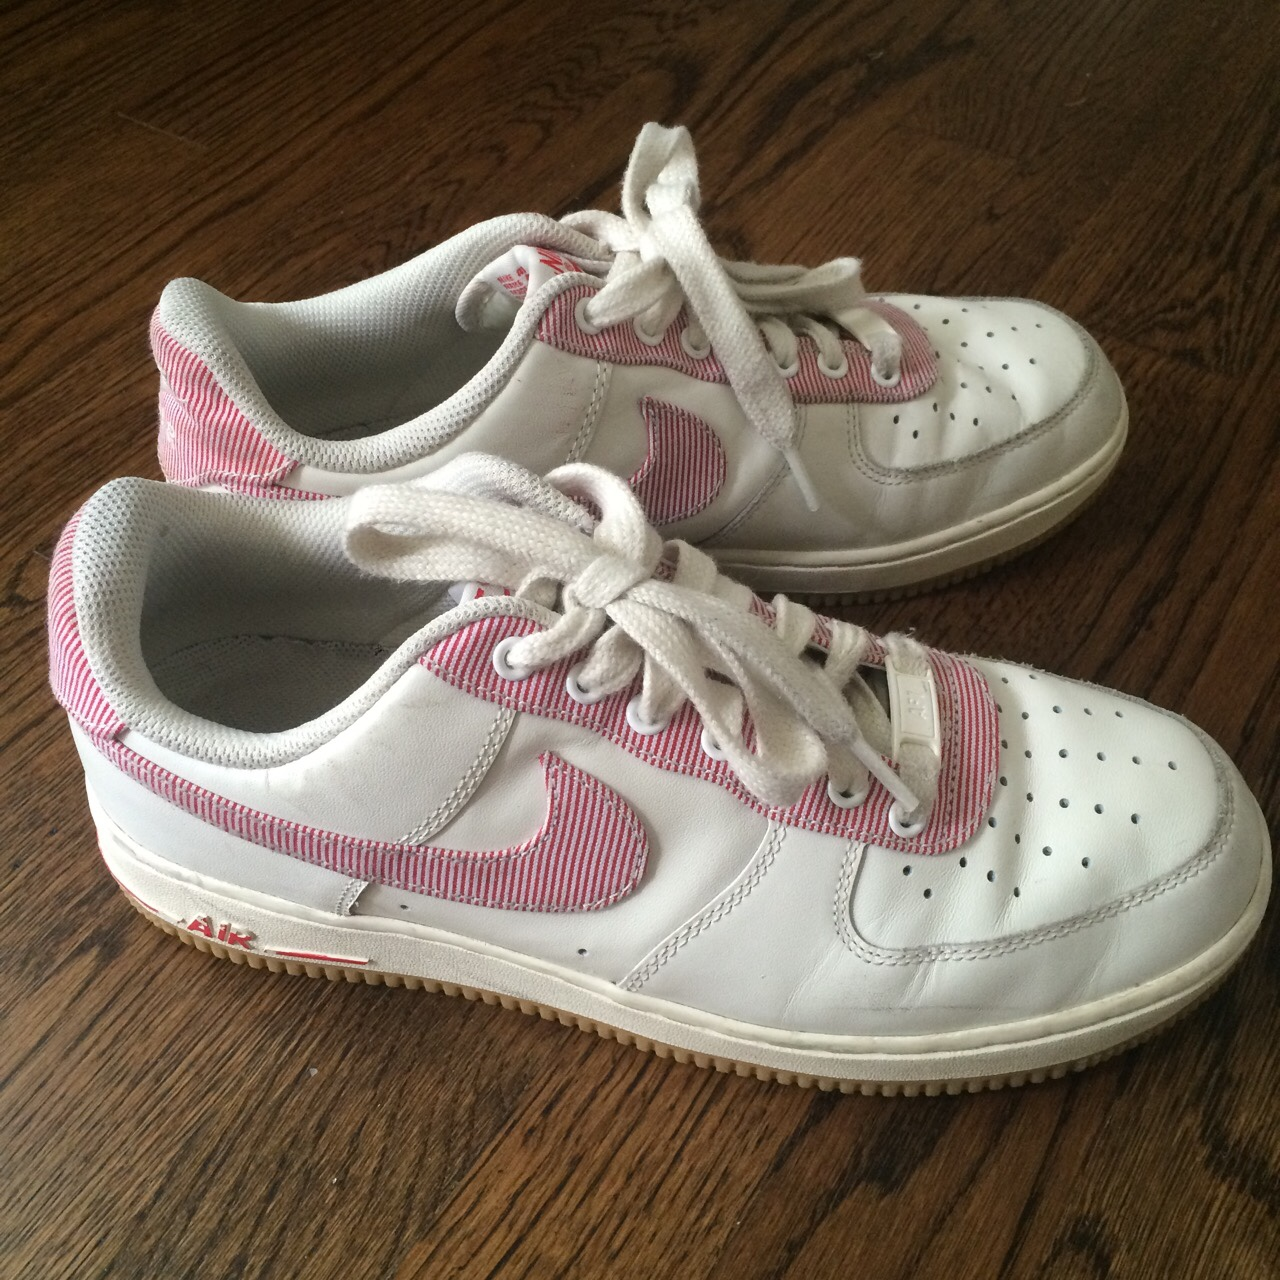 Details zu Avail NOW! Nike Air Force One SF OBJ Size 10 sealed in box and ltd etd pinprint